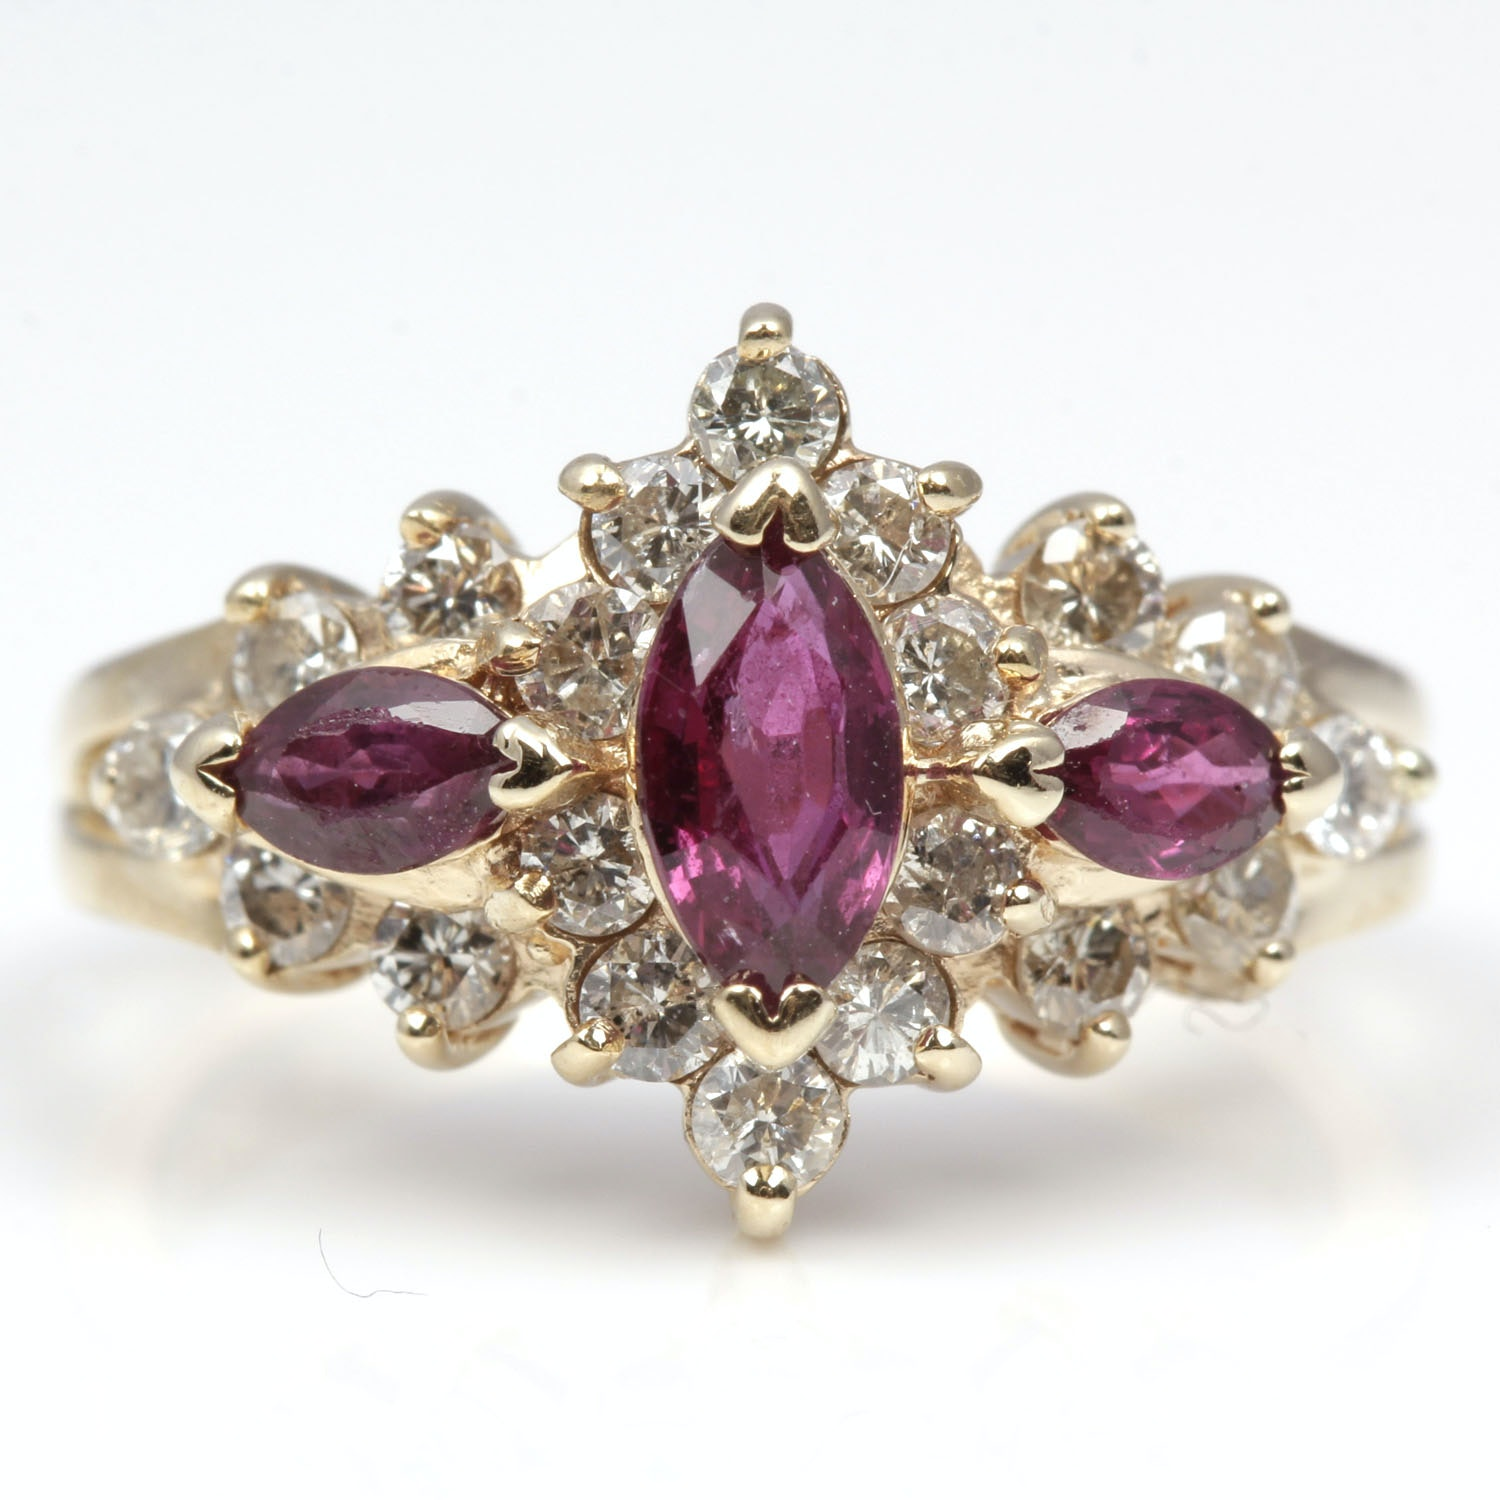 14K Yellow Gold 1.20 Carat Diamond and Ruby Ring